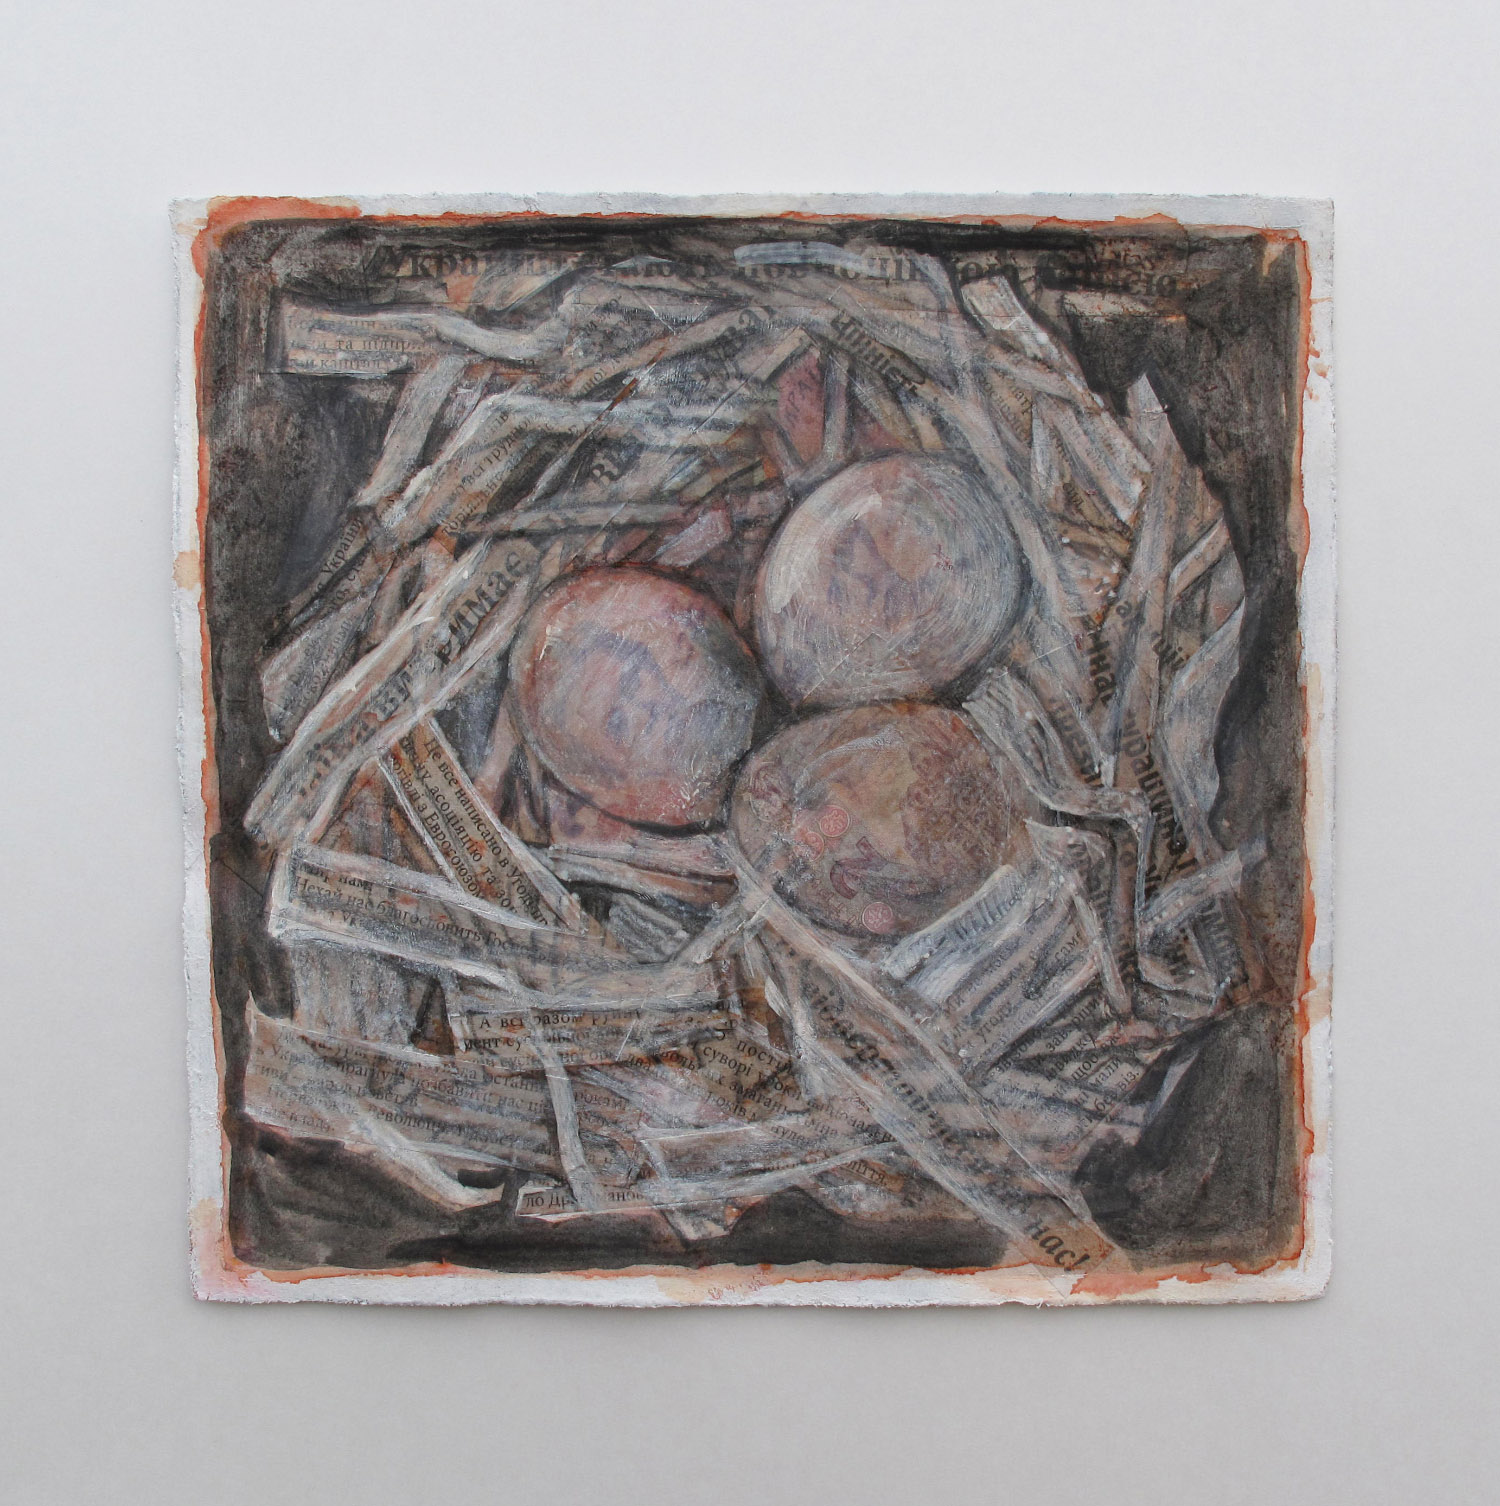 2ch(0) -Words, words, words - egg tempera, collage, paper, 9x9 in. 2014.jpg